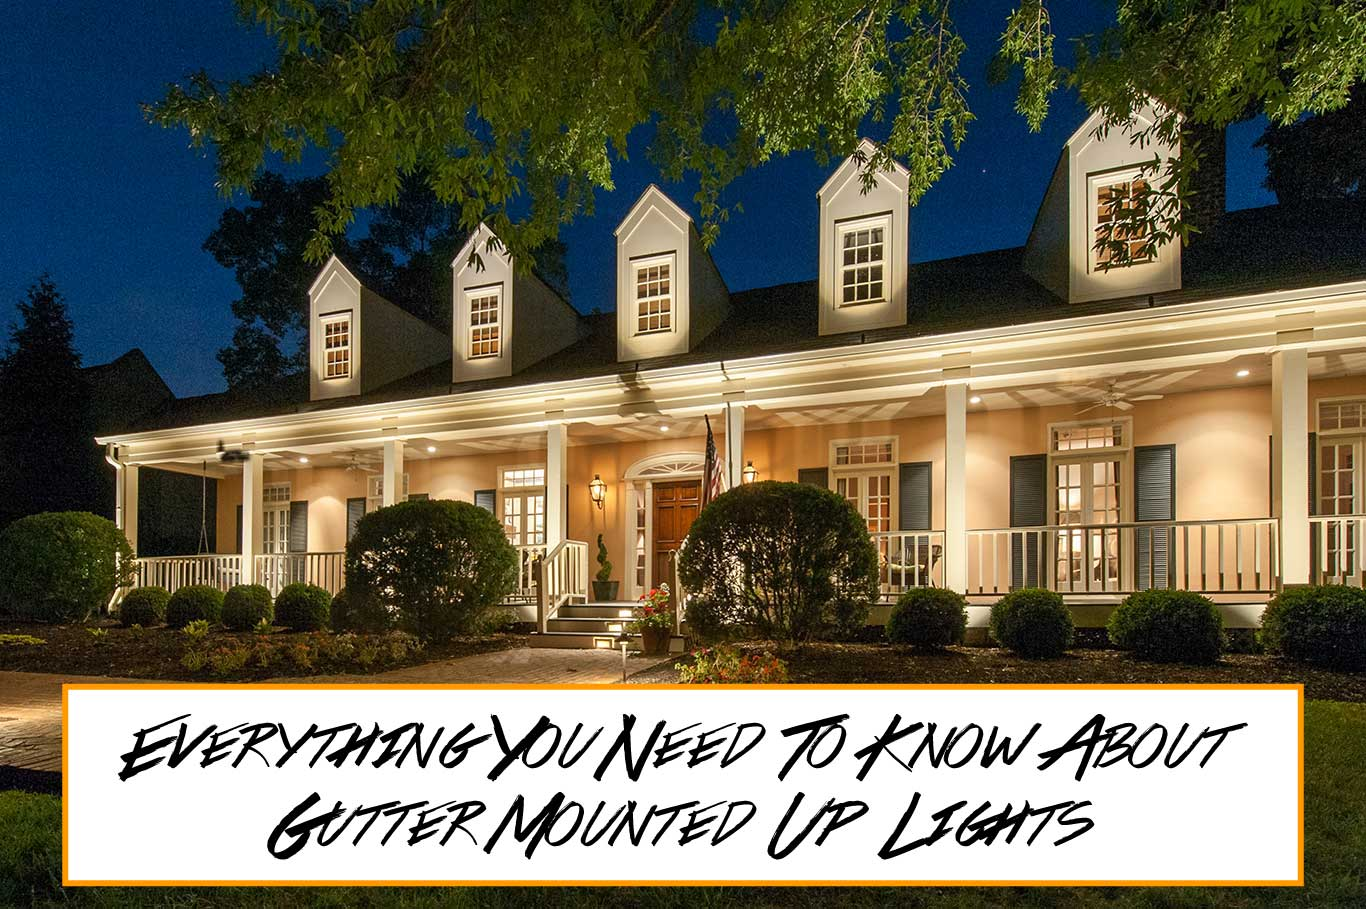 Everything You Need to Know about Gutter Mounted Up Lights